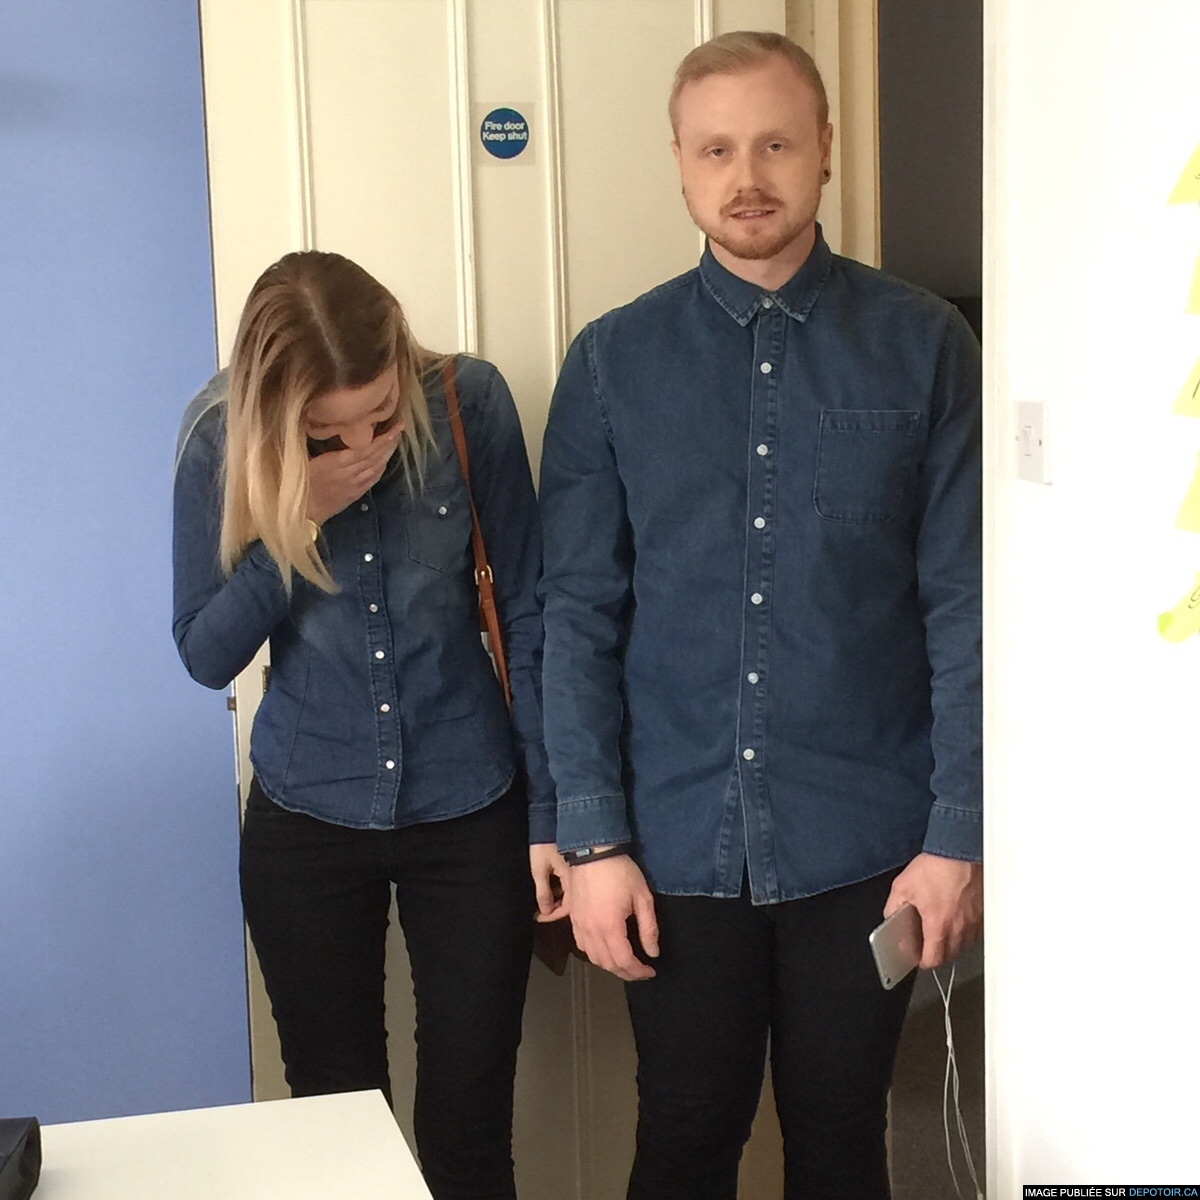 ..when you realise that you're dressed the same as someone else in the office today.